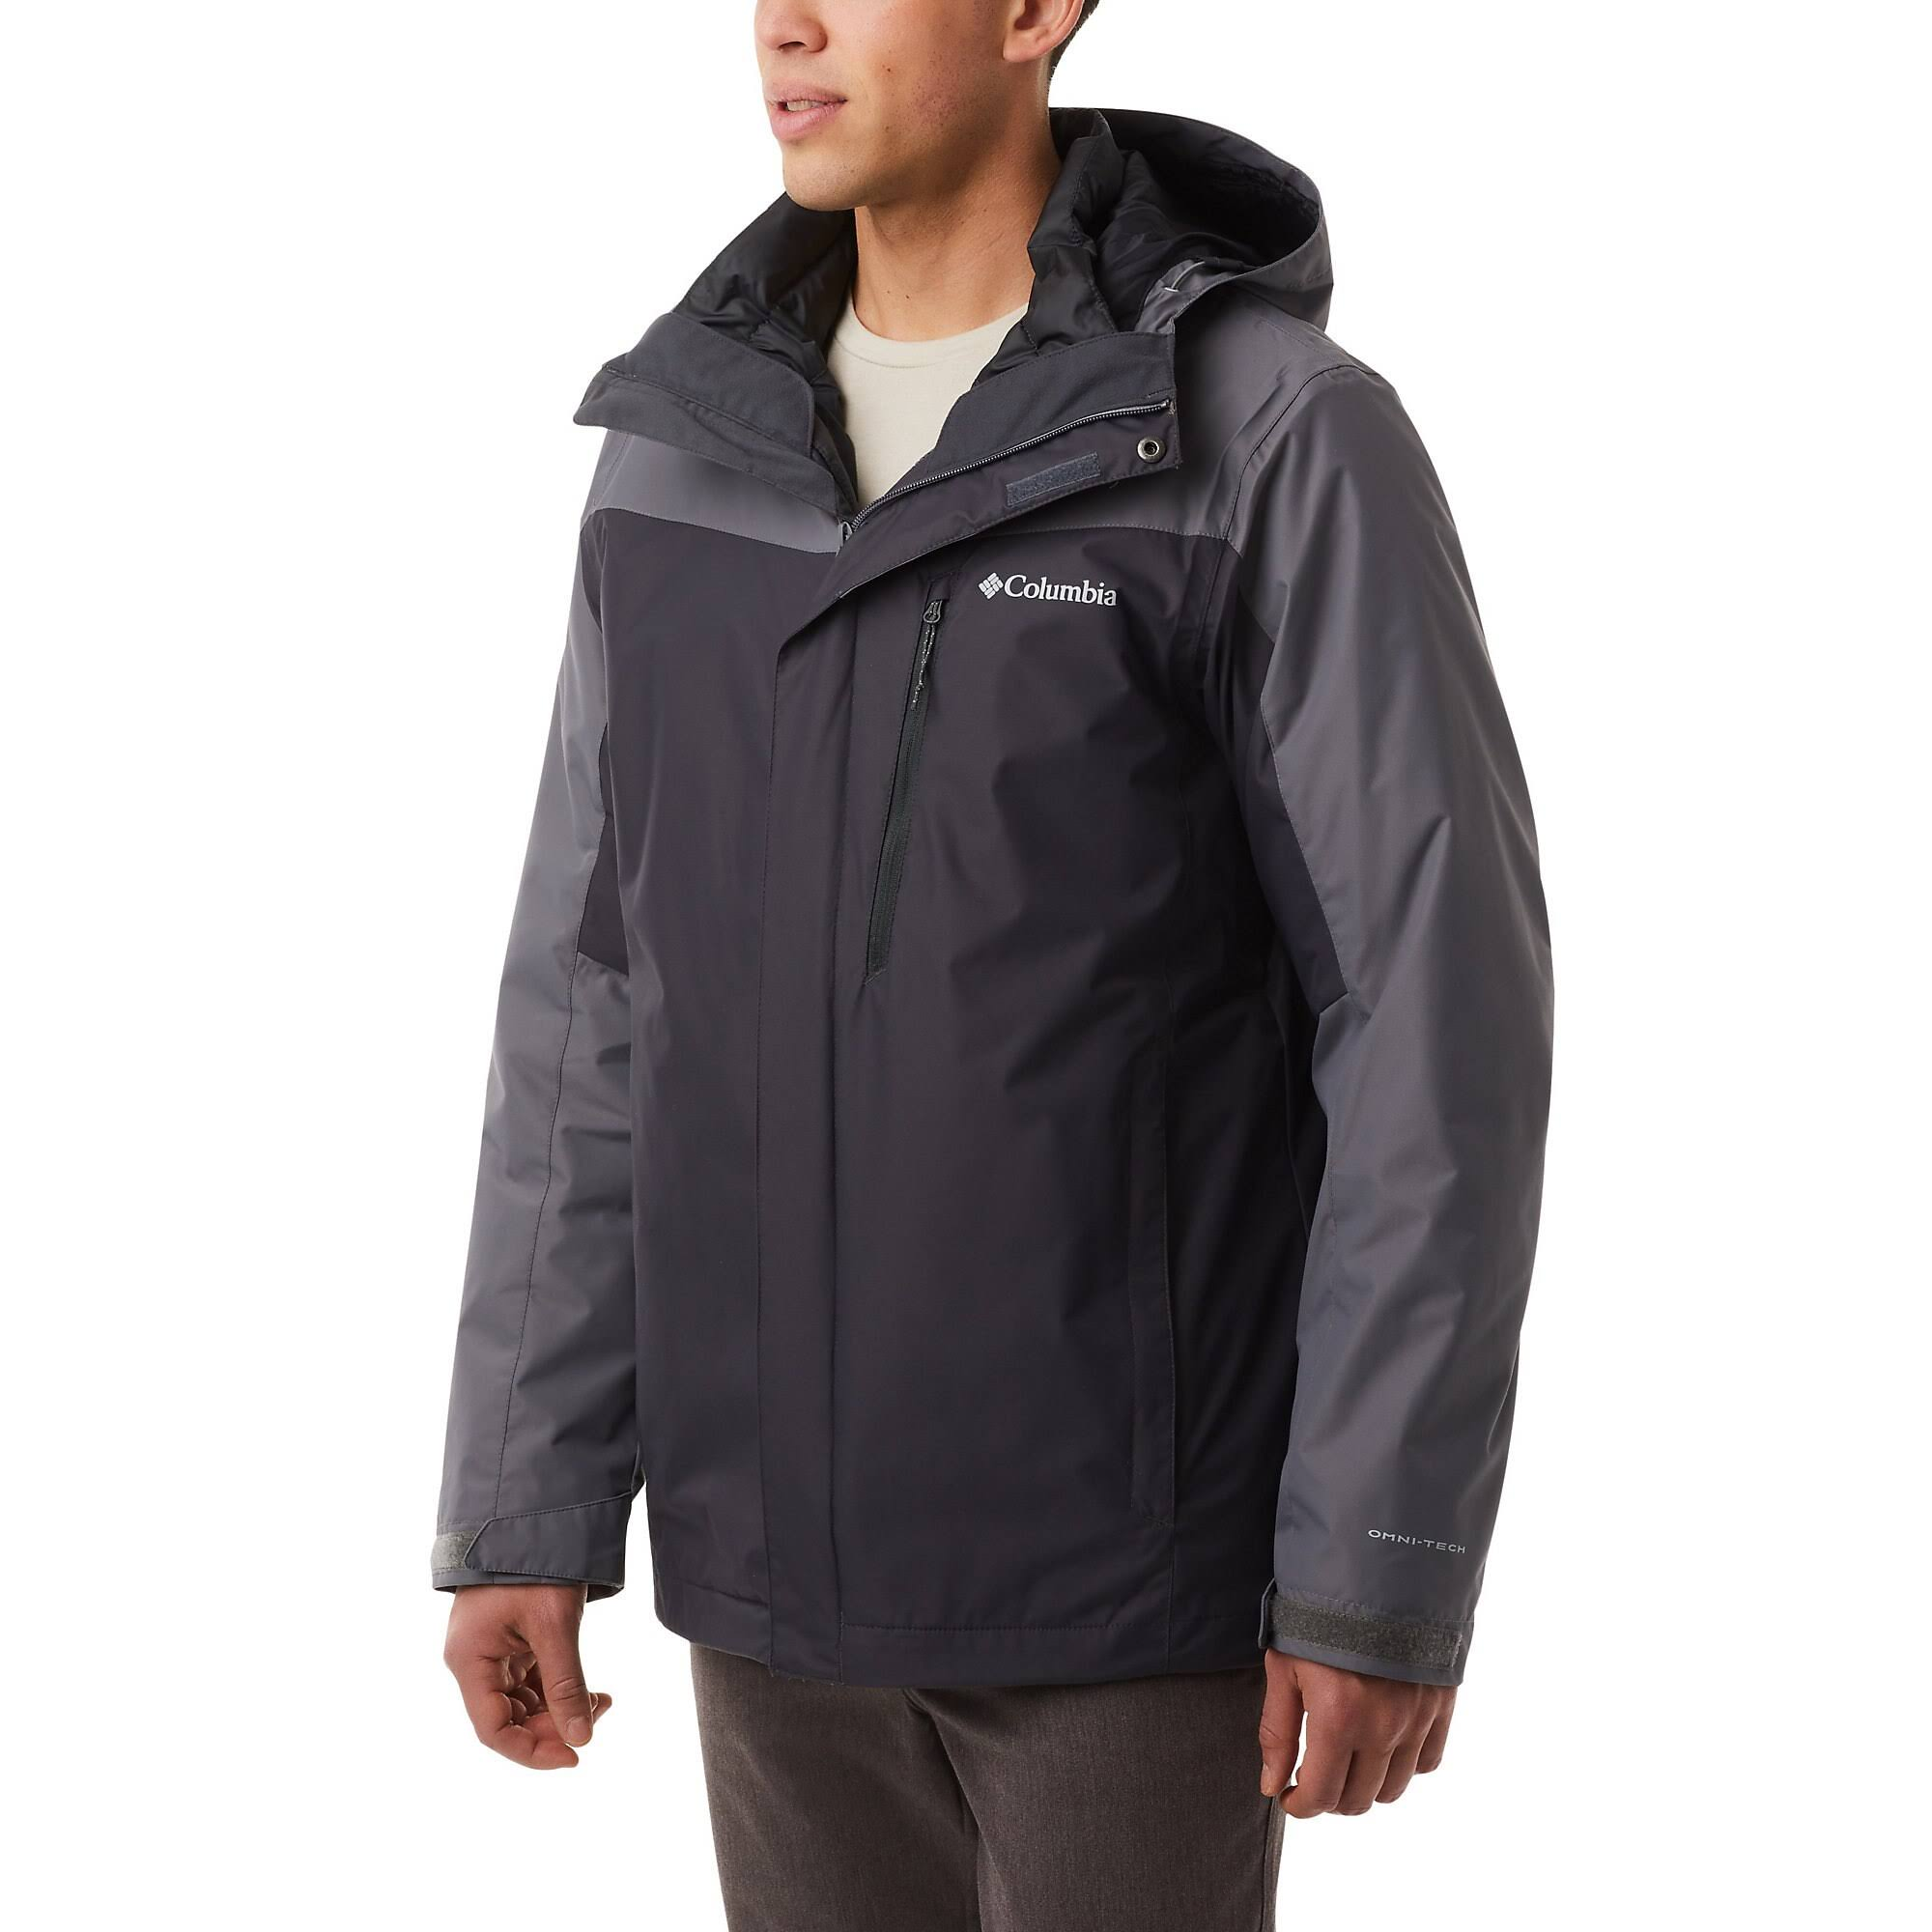 Columbia Men's Whirlibird IV Interchange Jacket - 2XT - Shark/City Grey